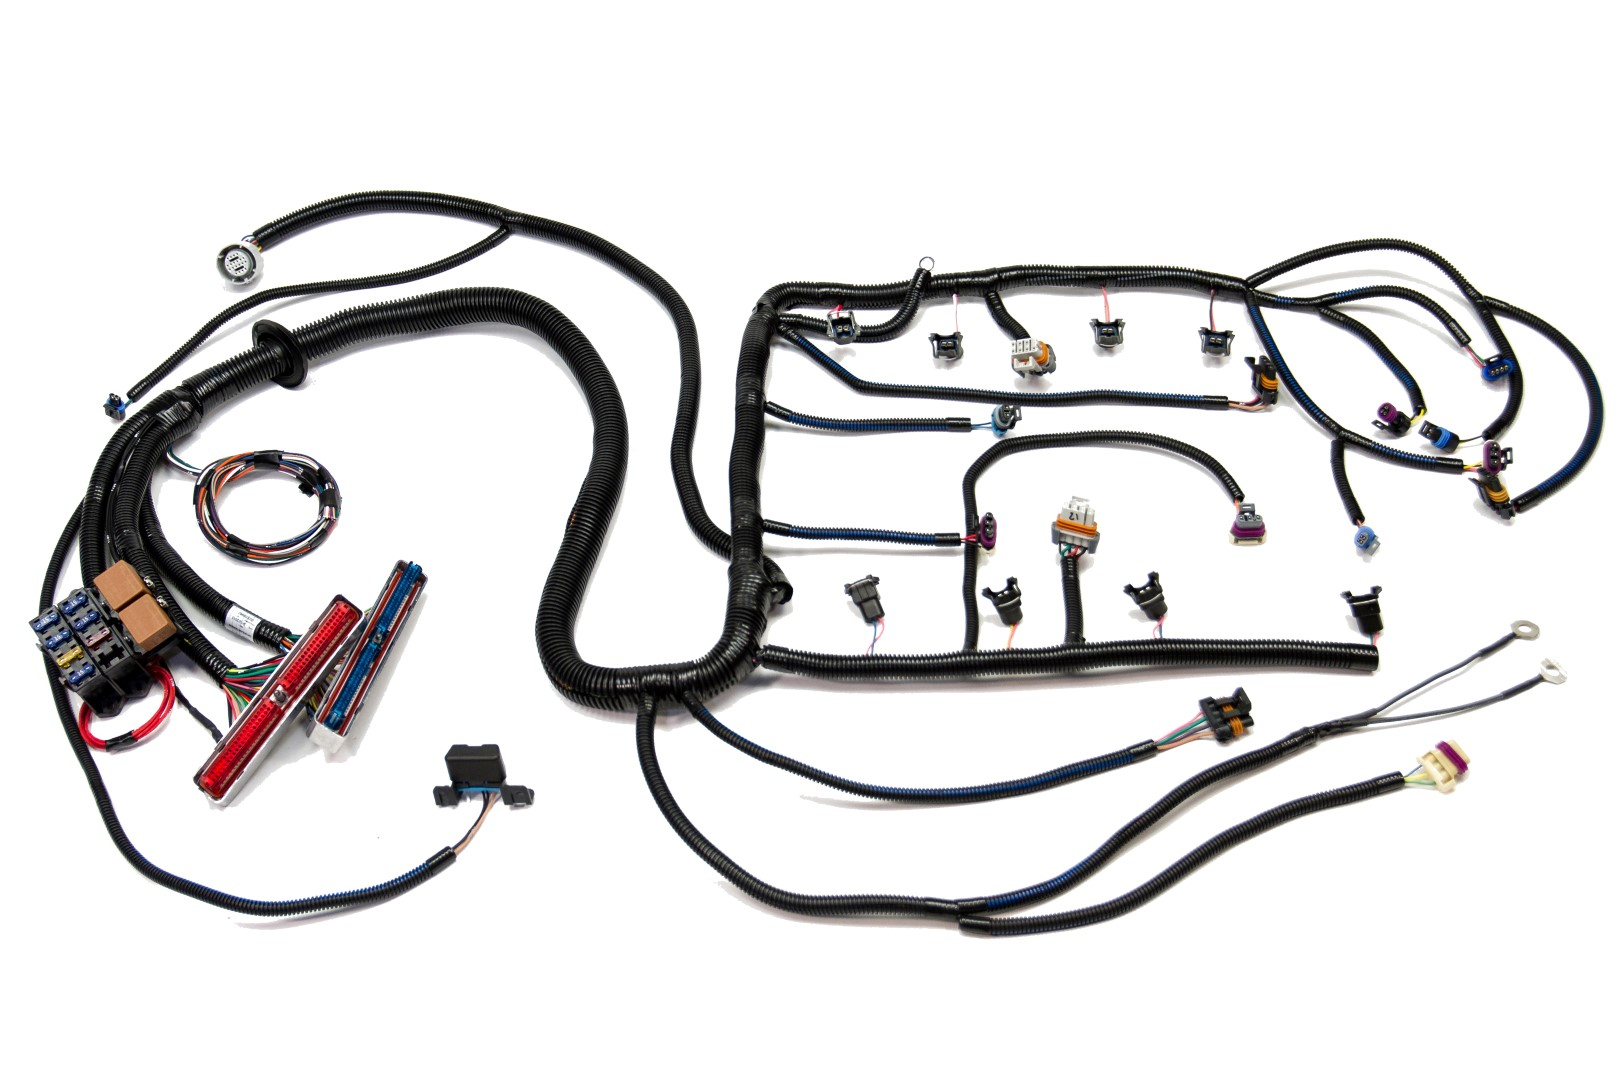 HAR 1012 psi standalone wiring harness ls wiring ls wiring harness performance systems integration wiring harness at alyssarenee.co